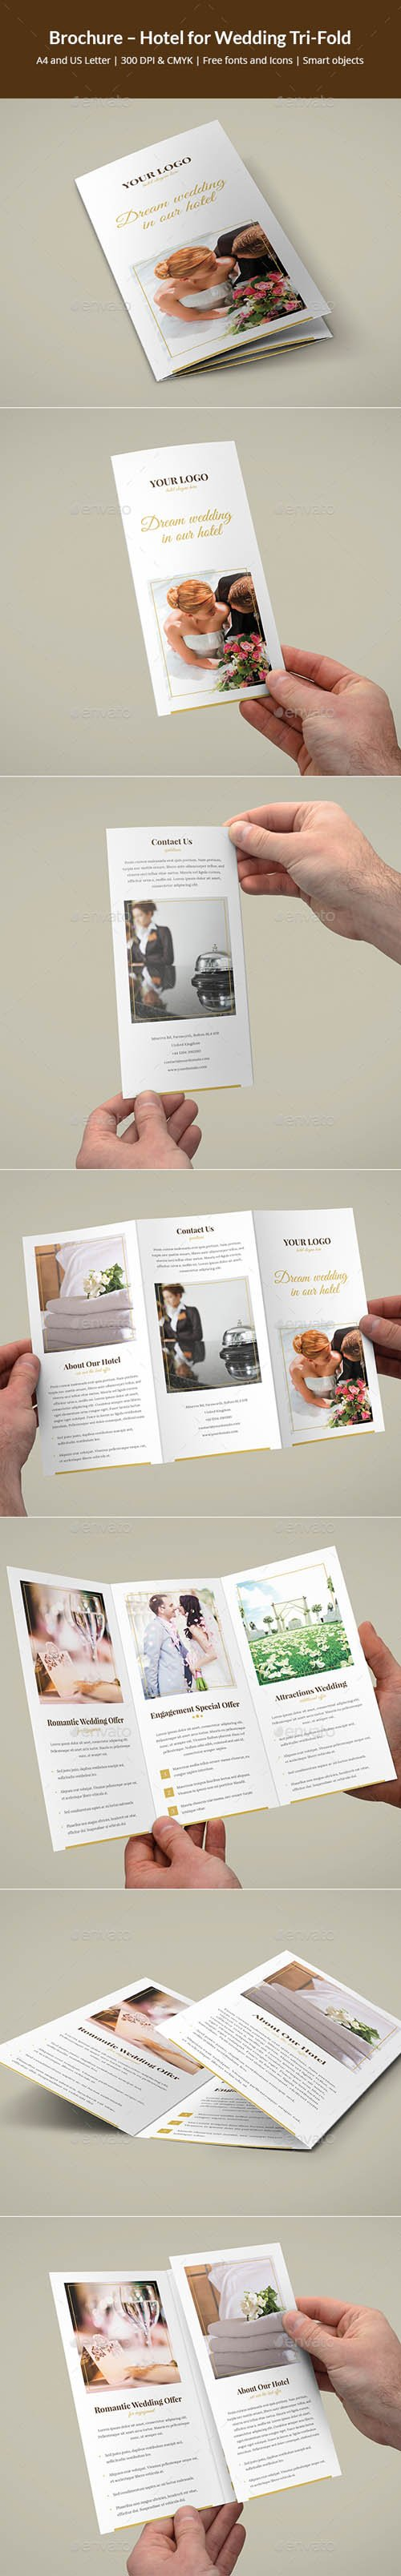 Brochure – Hotel for Wedding Tri-Fold 19527312